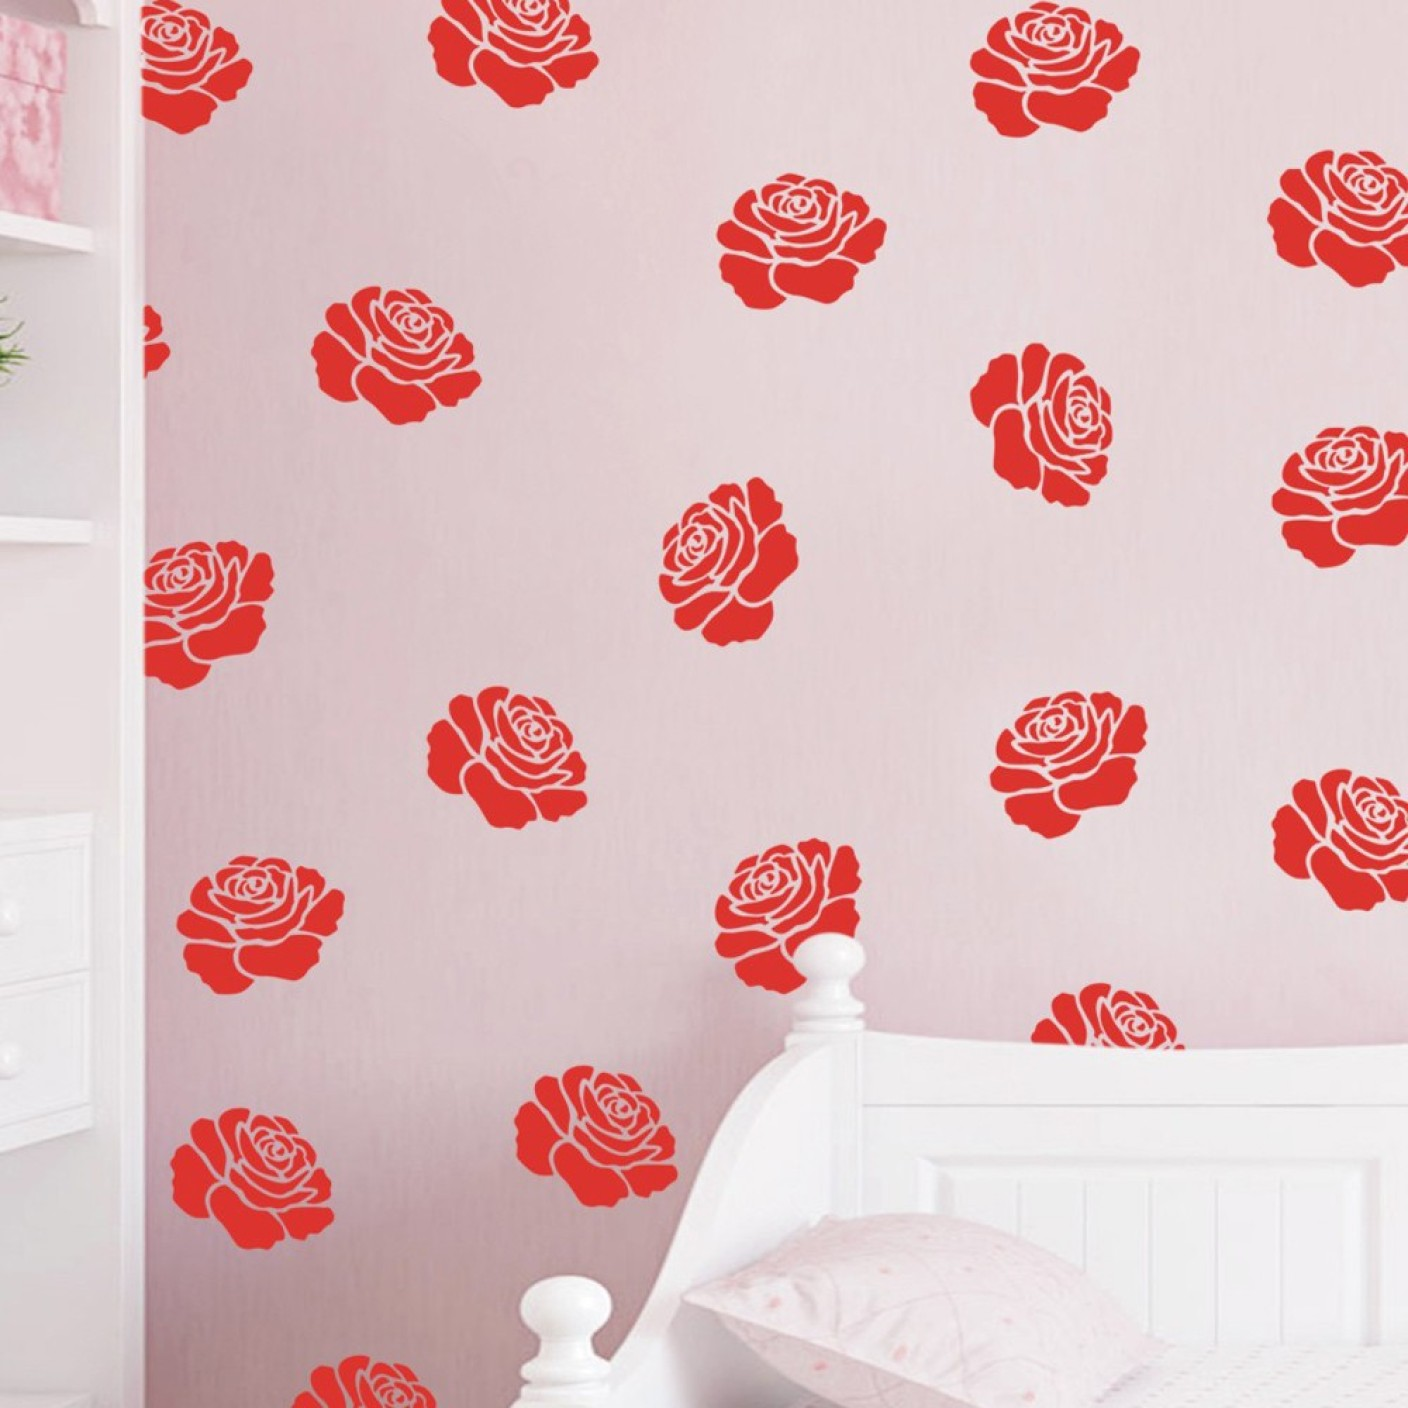 Heart wall stencil image collections home wall decoration ideas you are my sunshine wall stencil image collections home wall heart wall stencil image collections home amipublicfo Choice Image